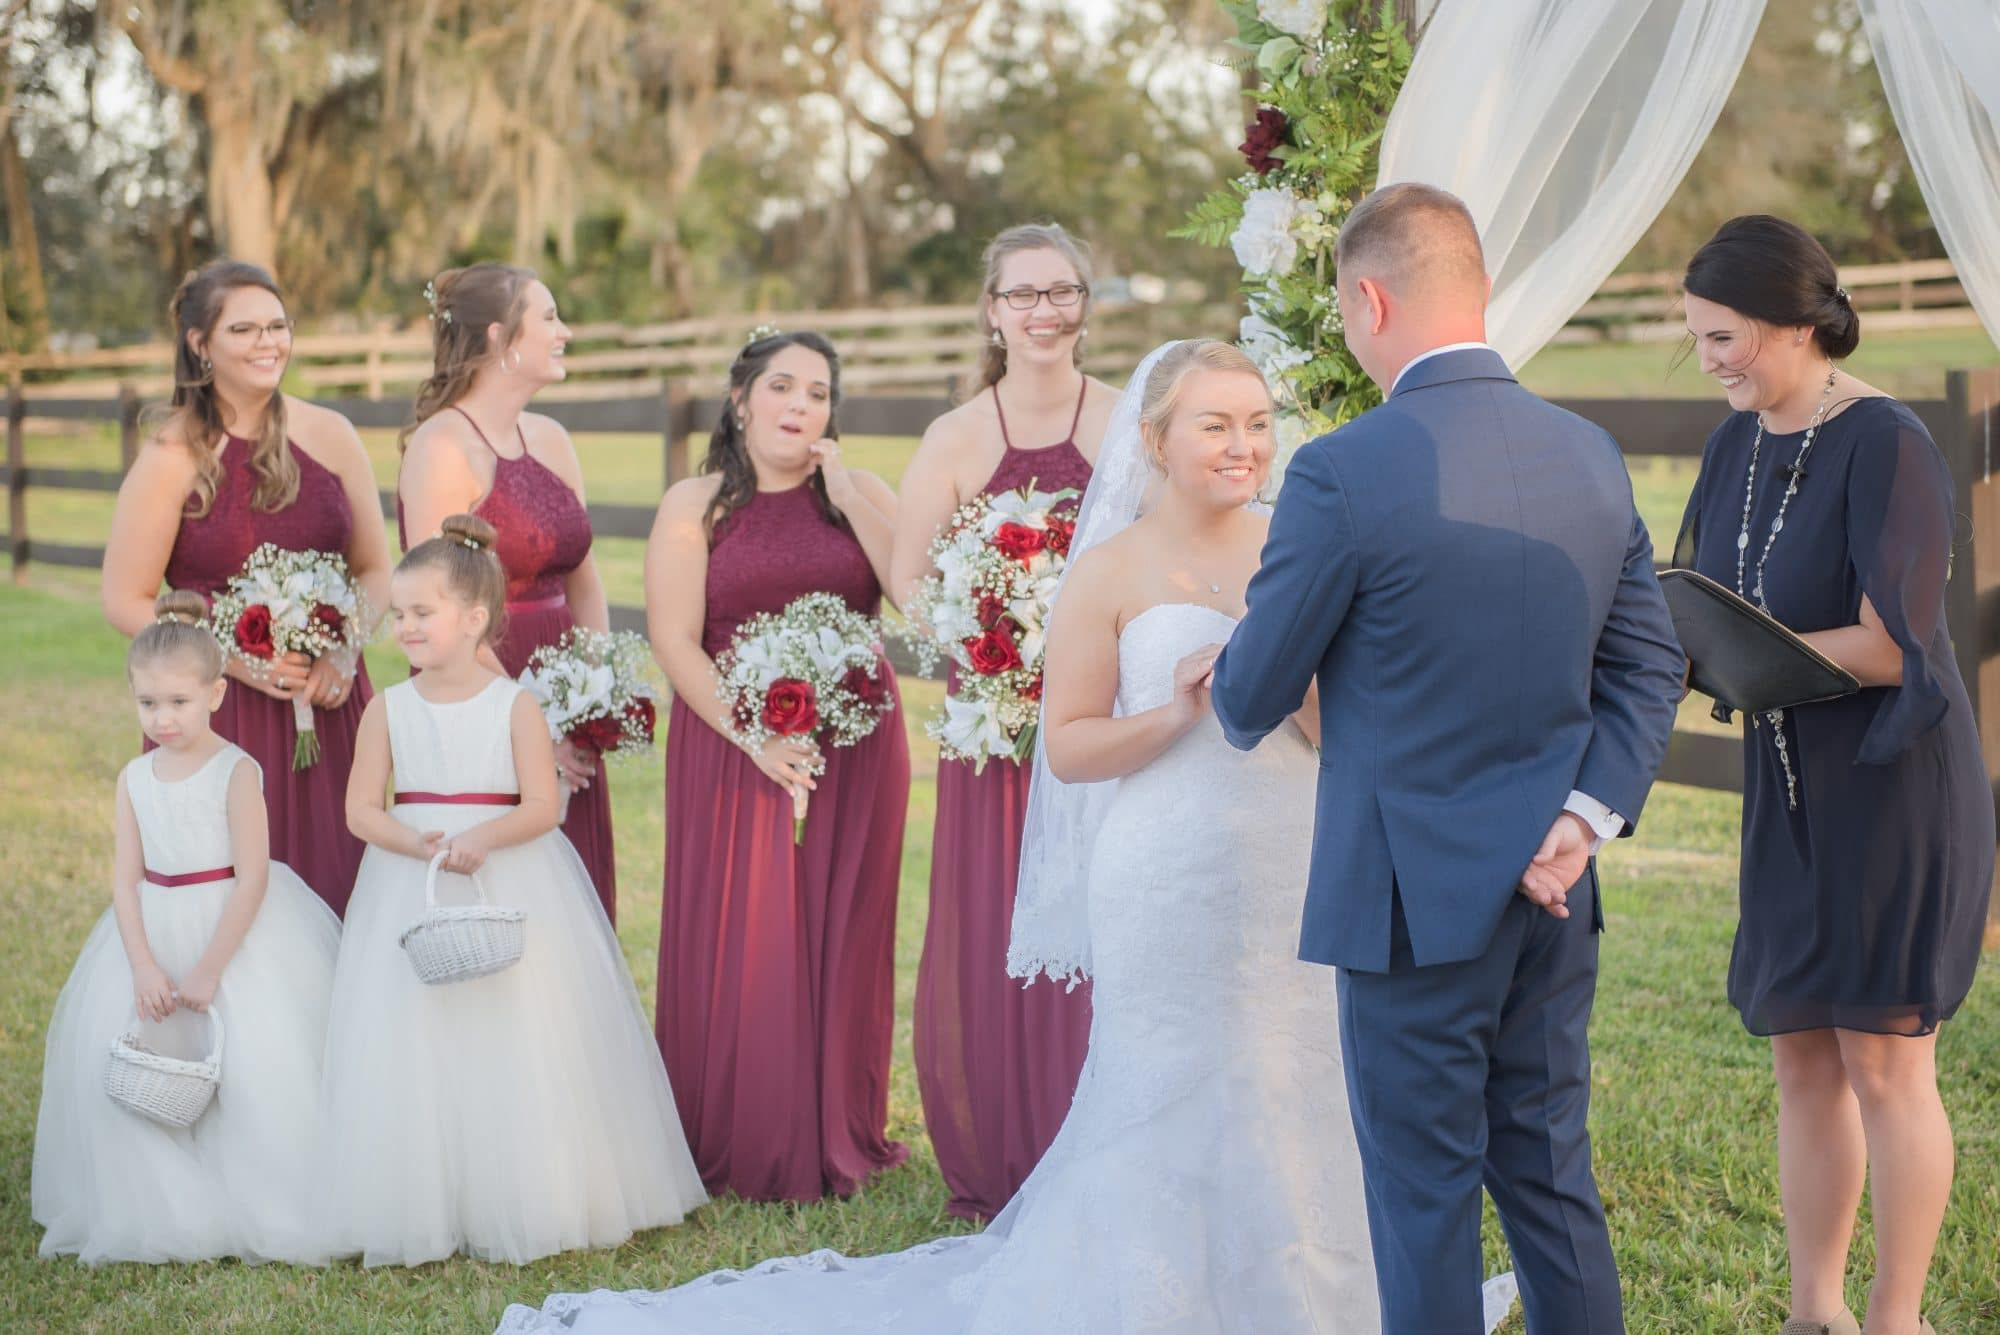 Brittany and Todd saying their vows in beautiful outdoor ceremony